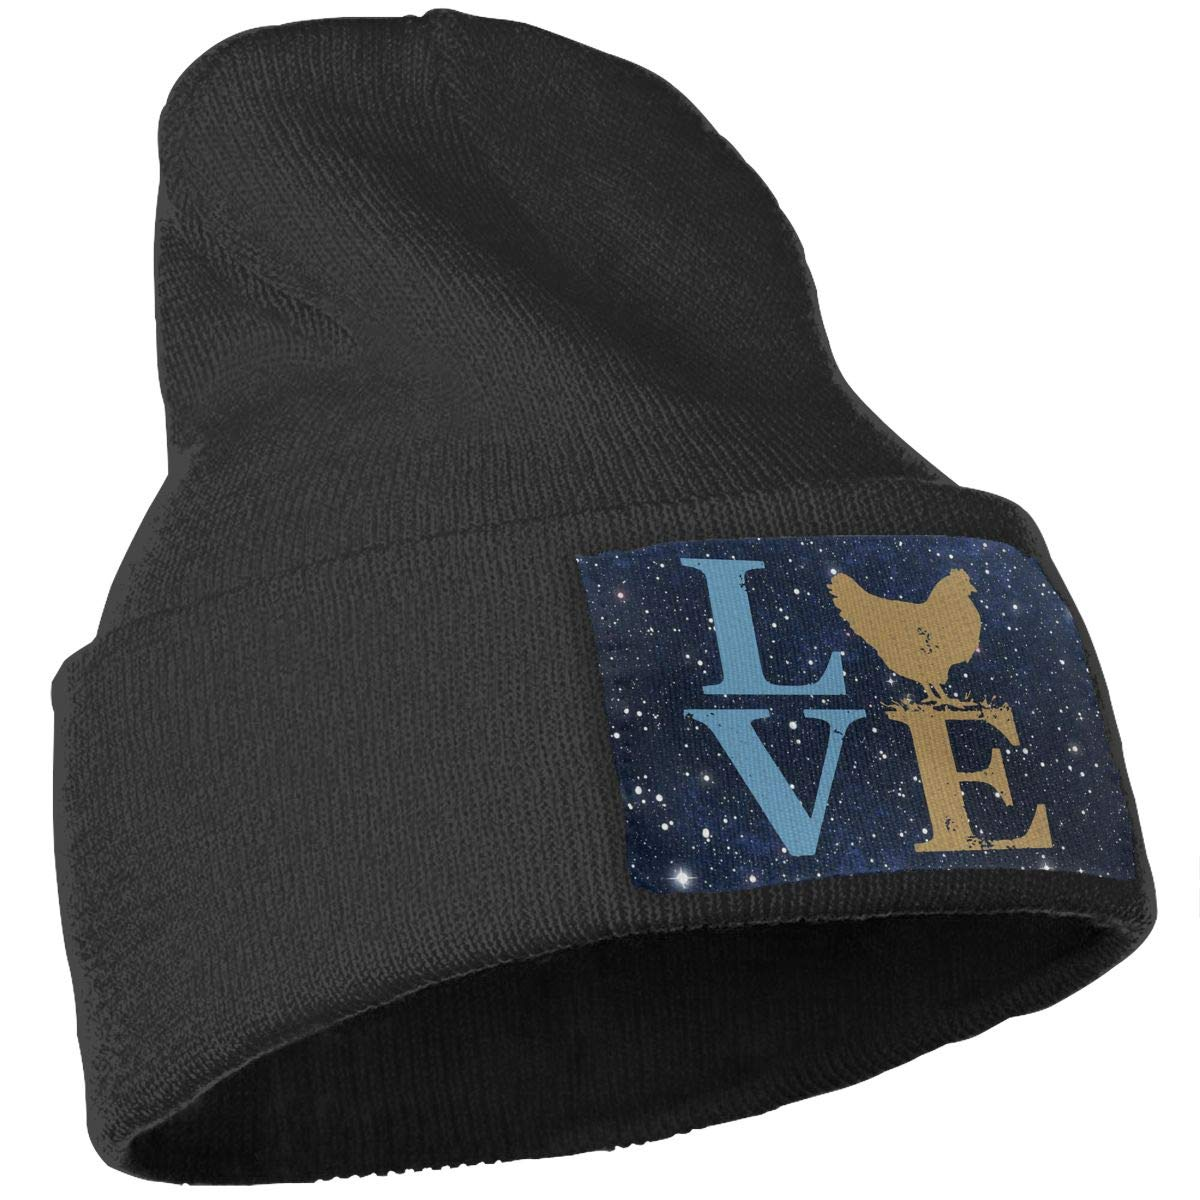 Love Chickens Soft Warm Beanie Hat Skull Cap